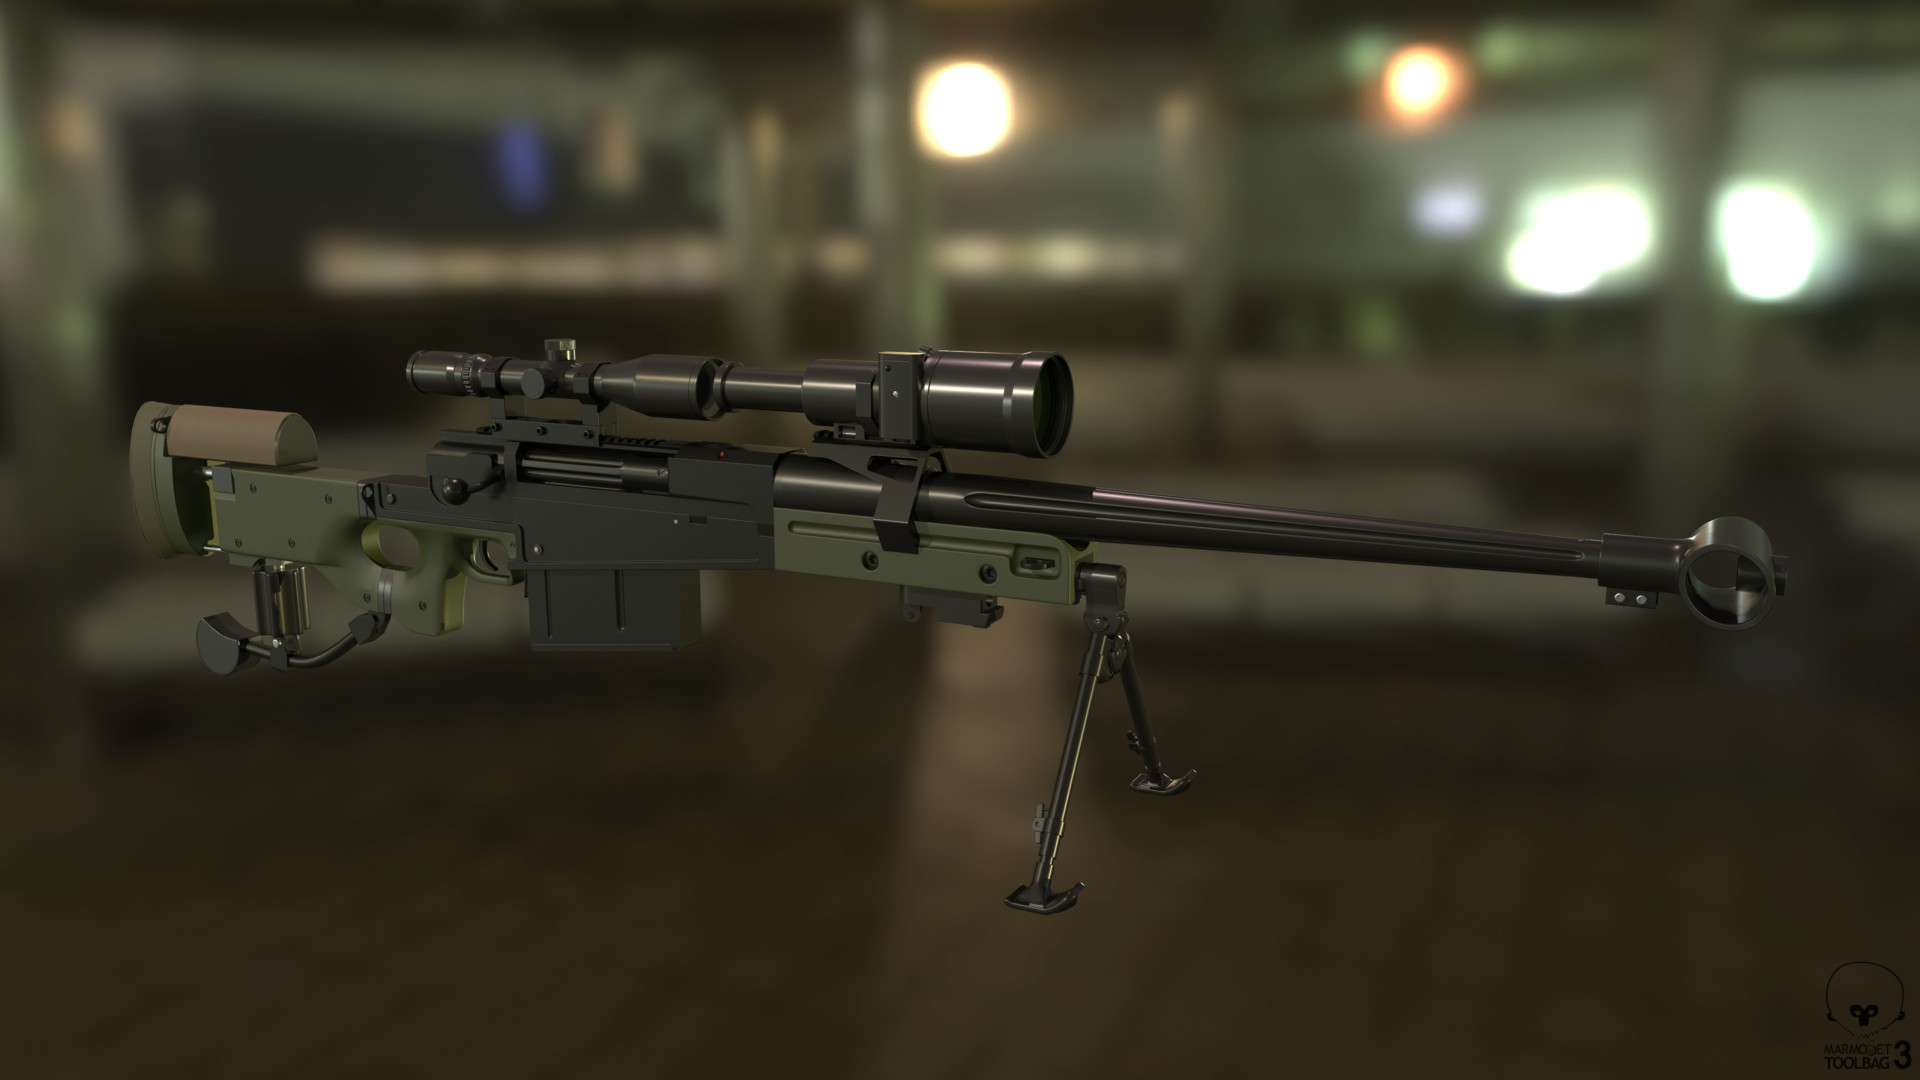 AM 50 / L121A1 with Schmidt & Bender 3-12x50 PM II Scope, front mount with Hensoldt NV80 night vision scope.  High Poly - Left Side. Adjusted Marmoset's render settings a little and added a few light sources and a blurred background.